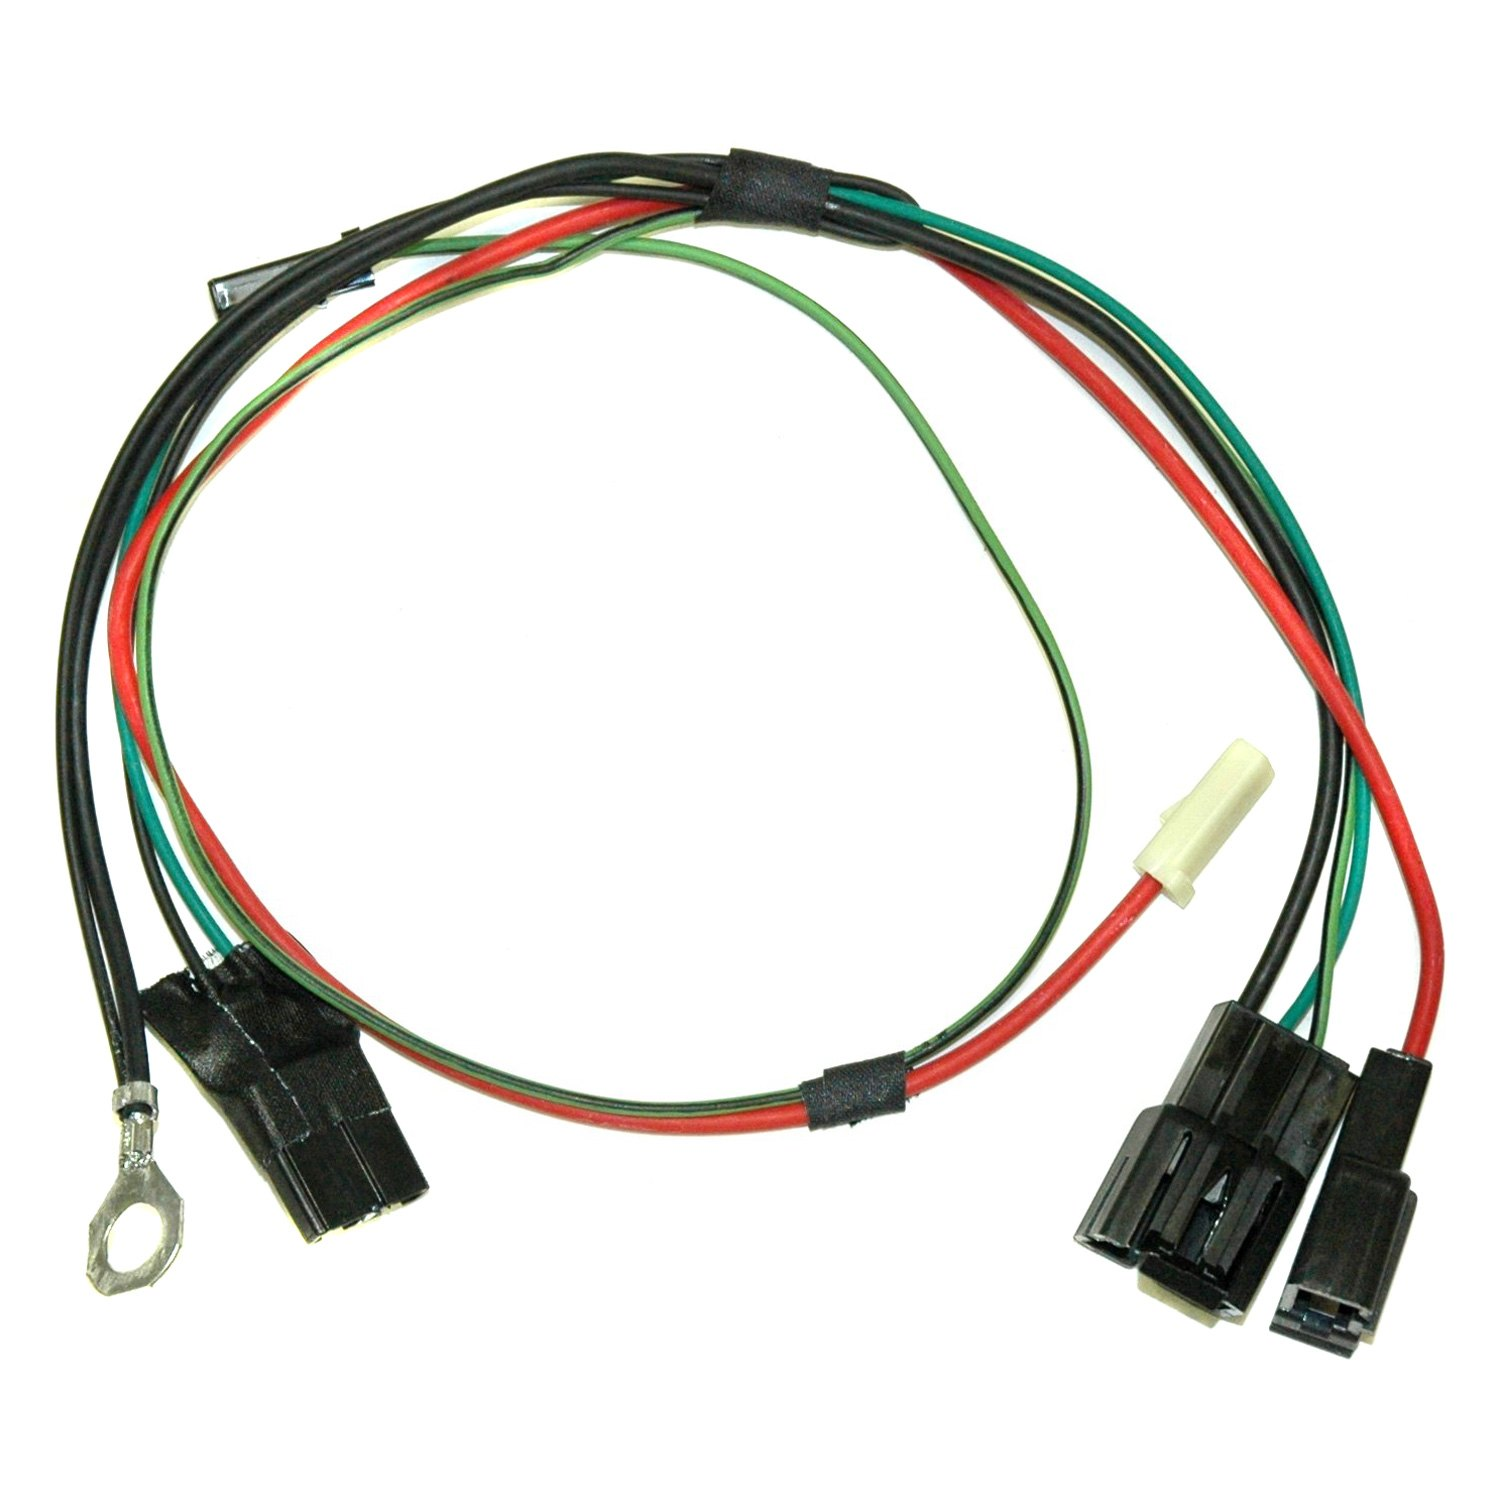 lectric limited� - a/c extension compressor wiring harness